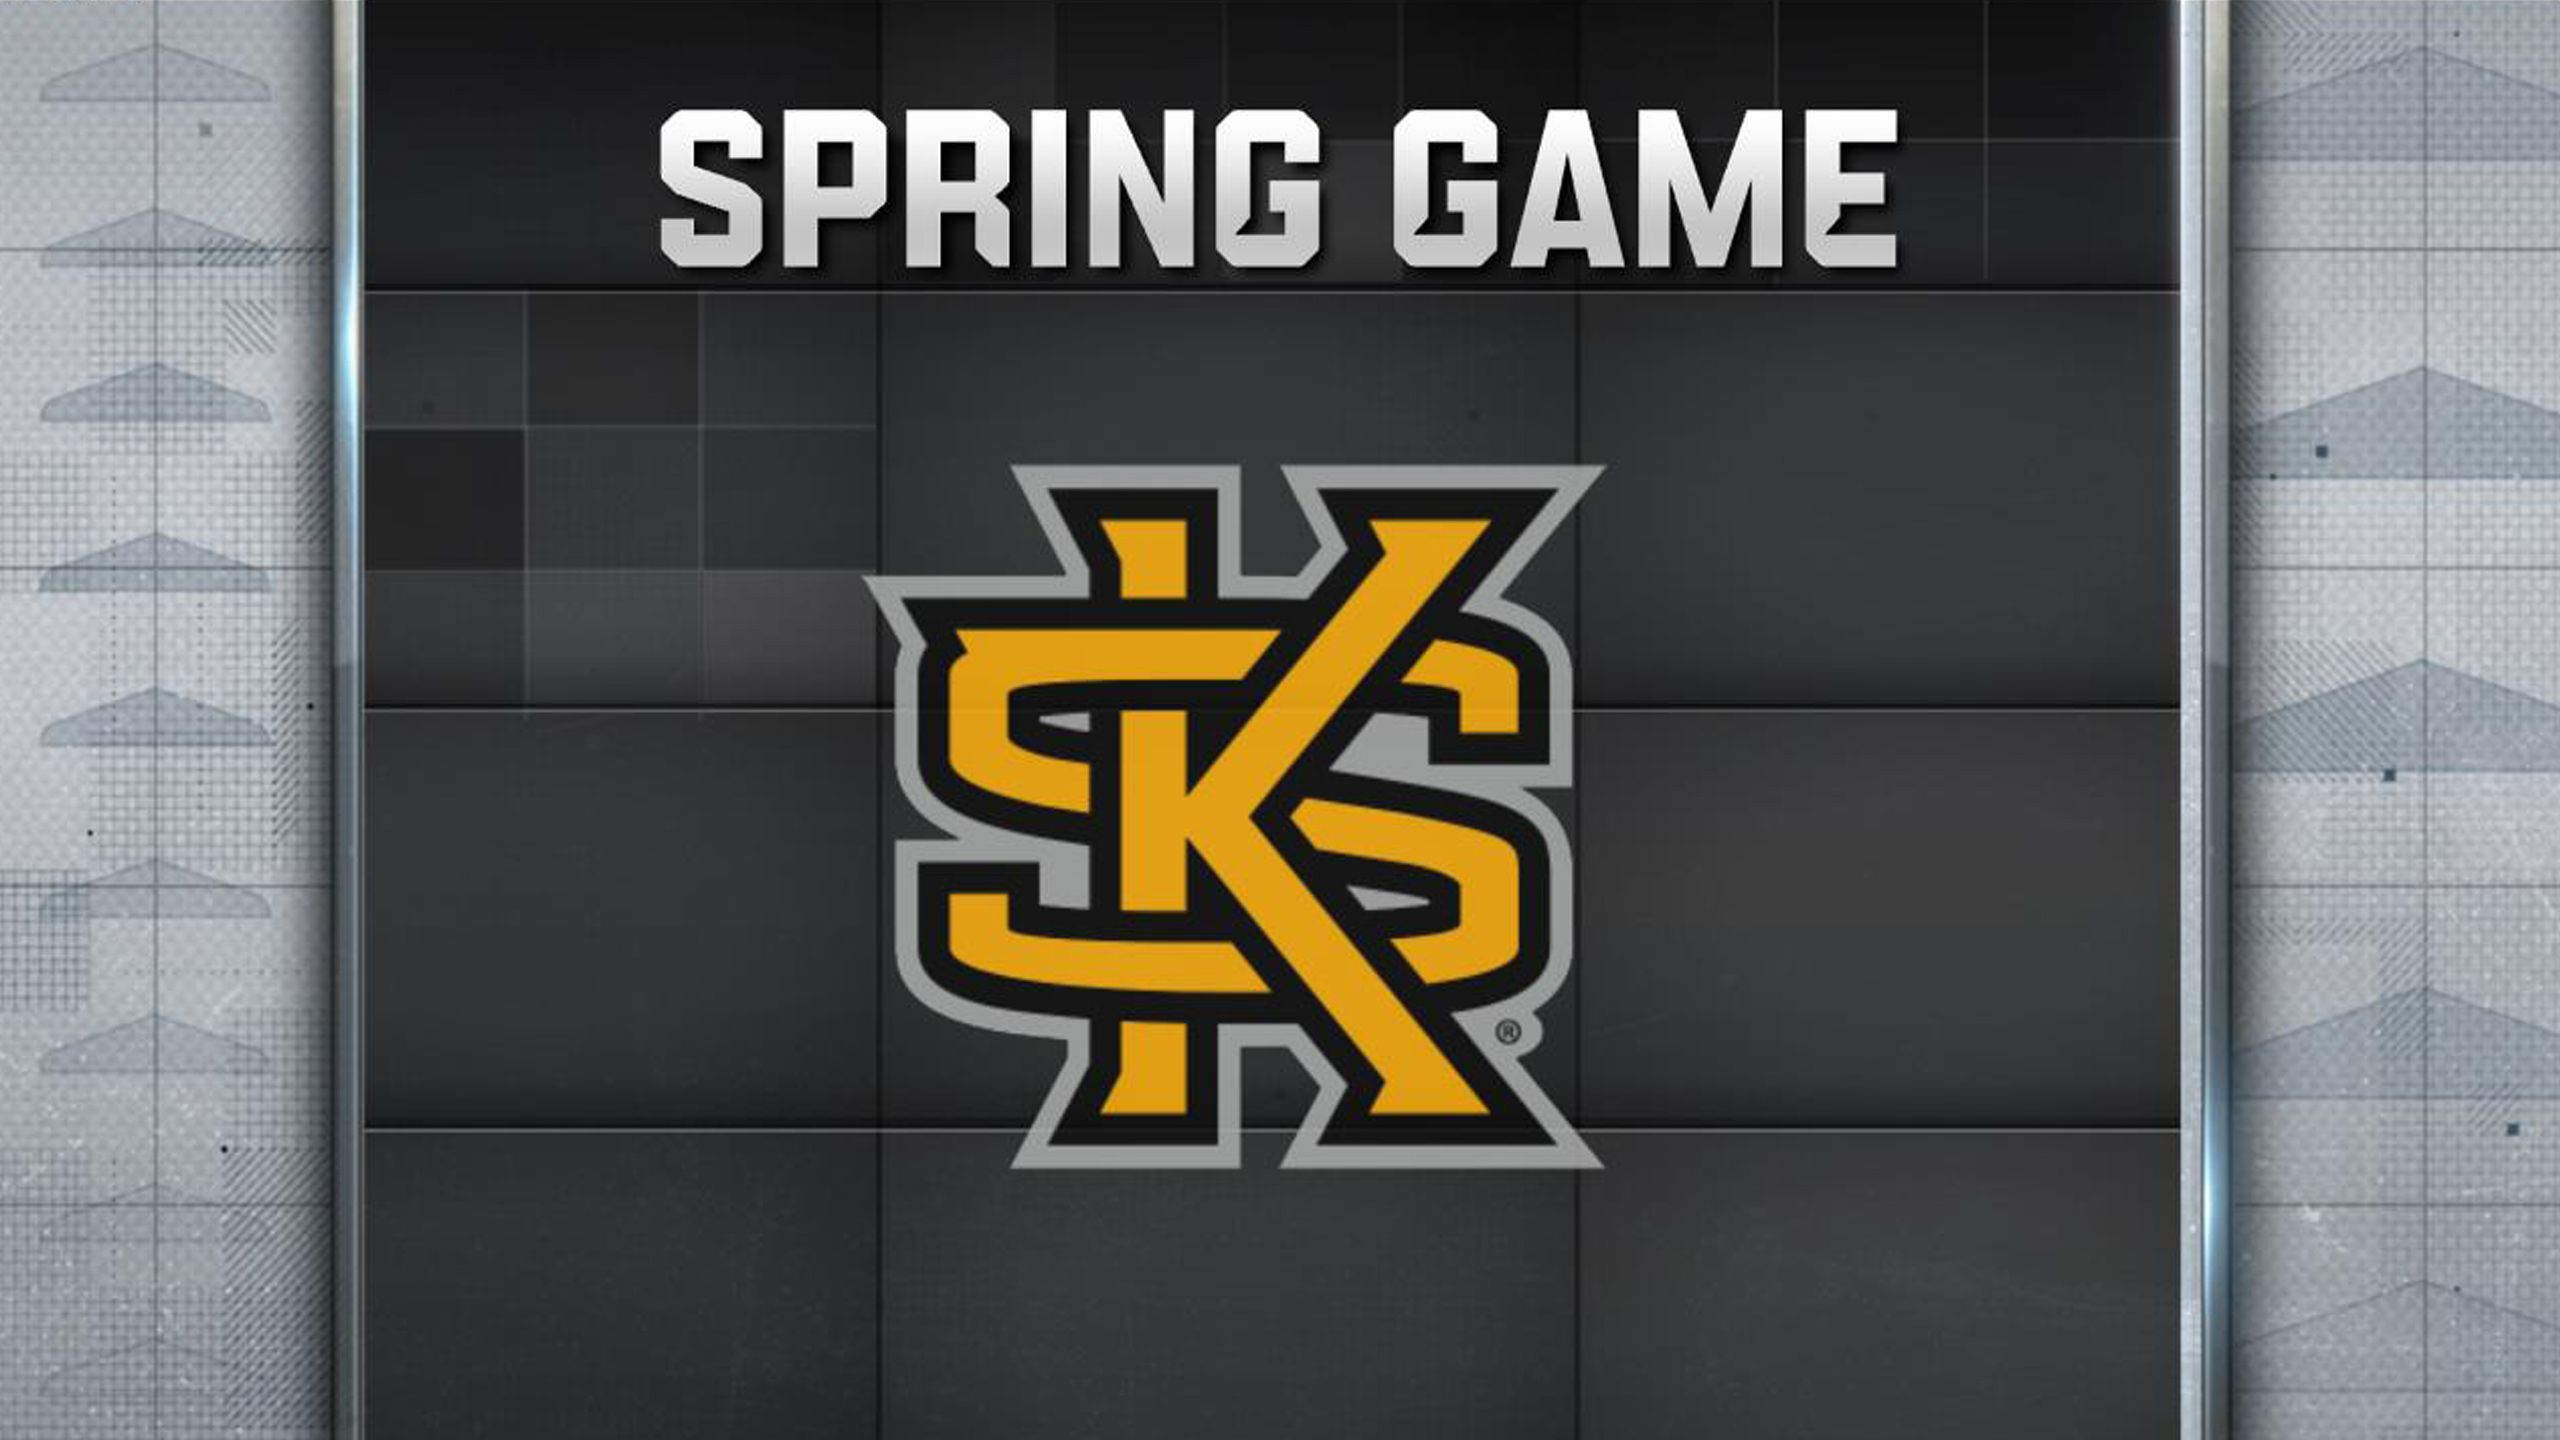 Kennesaw State Spring Game